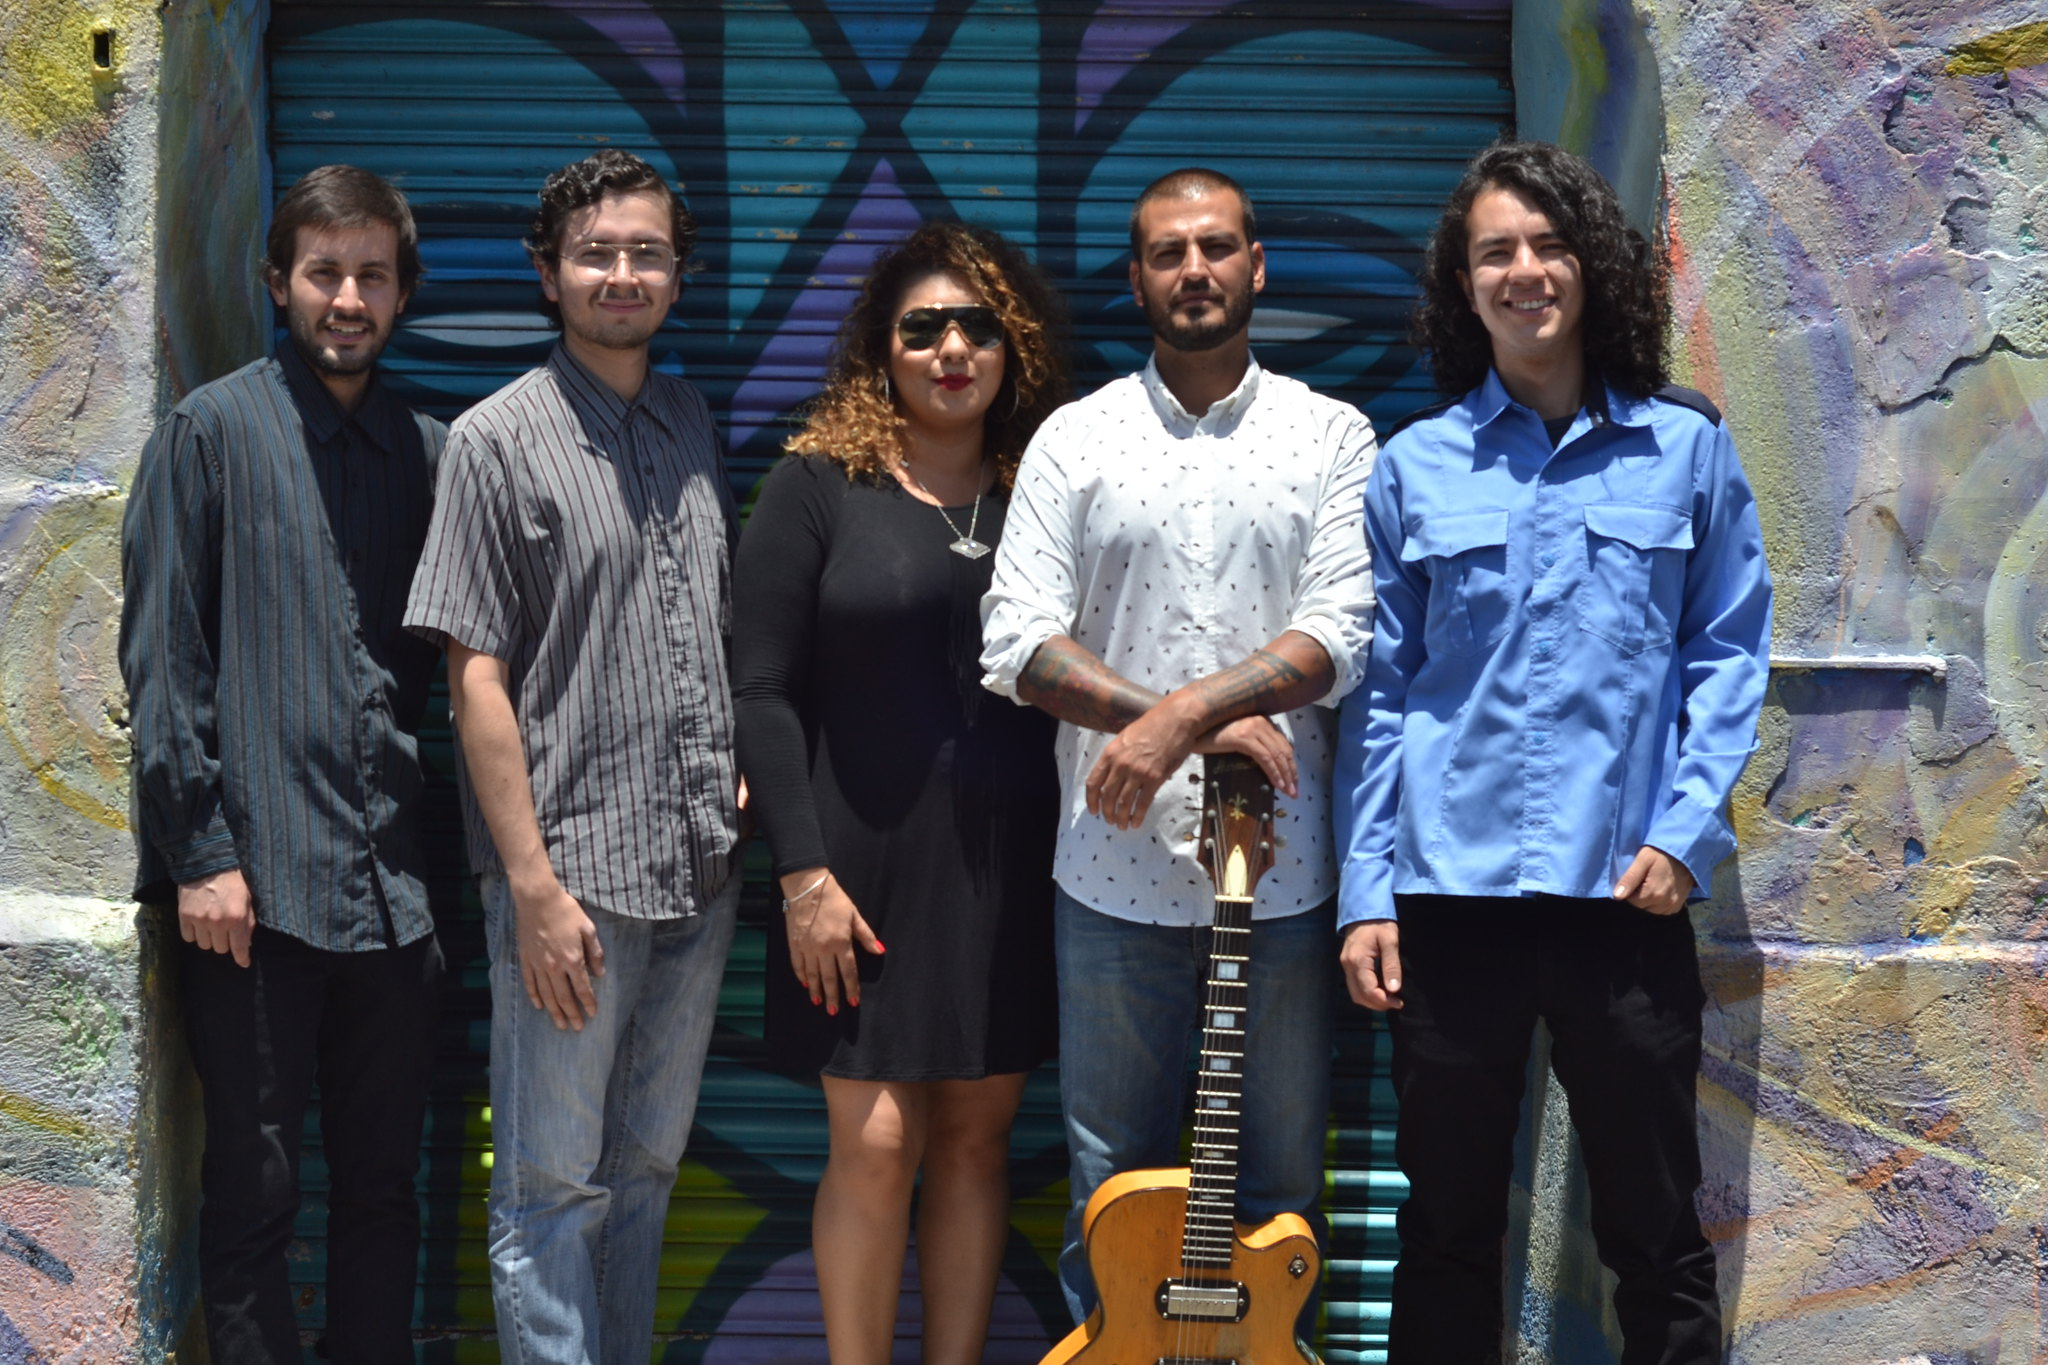 Presenta Zapopan concierto de Los Villanos Blues Band con Grizz Piña